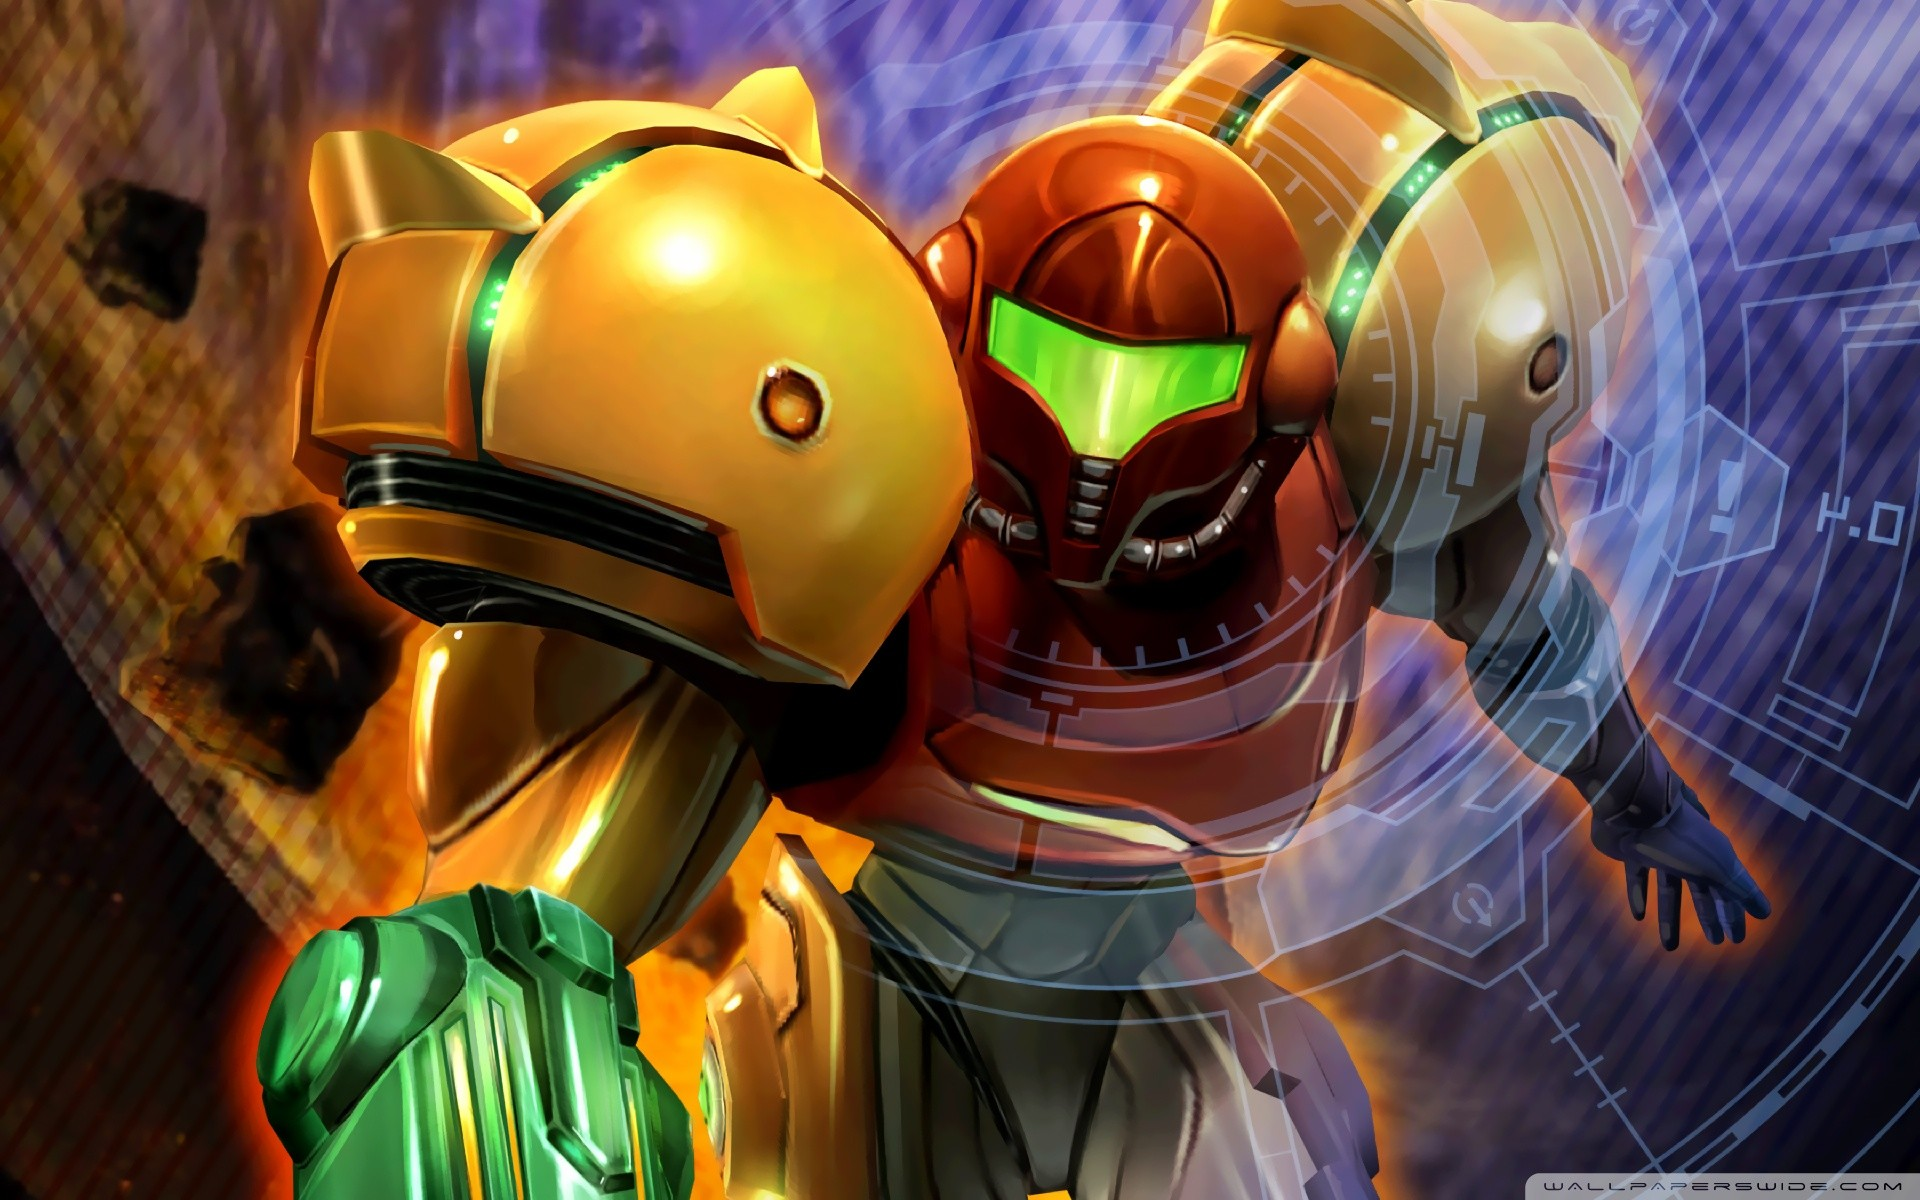 1920x1080 Images For Metroid Wallpaper 1080p